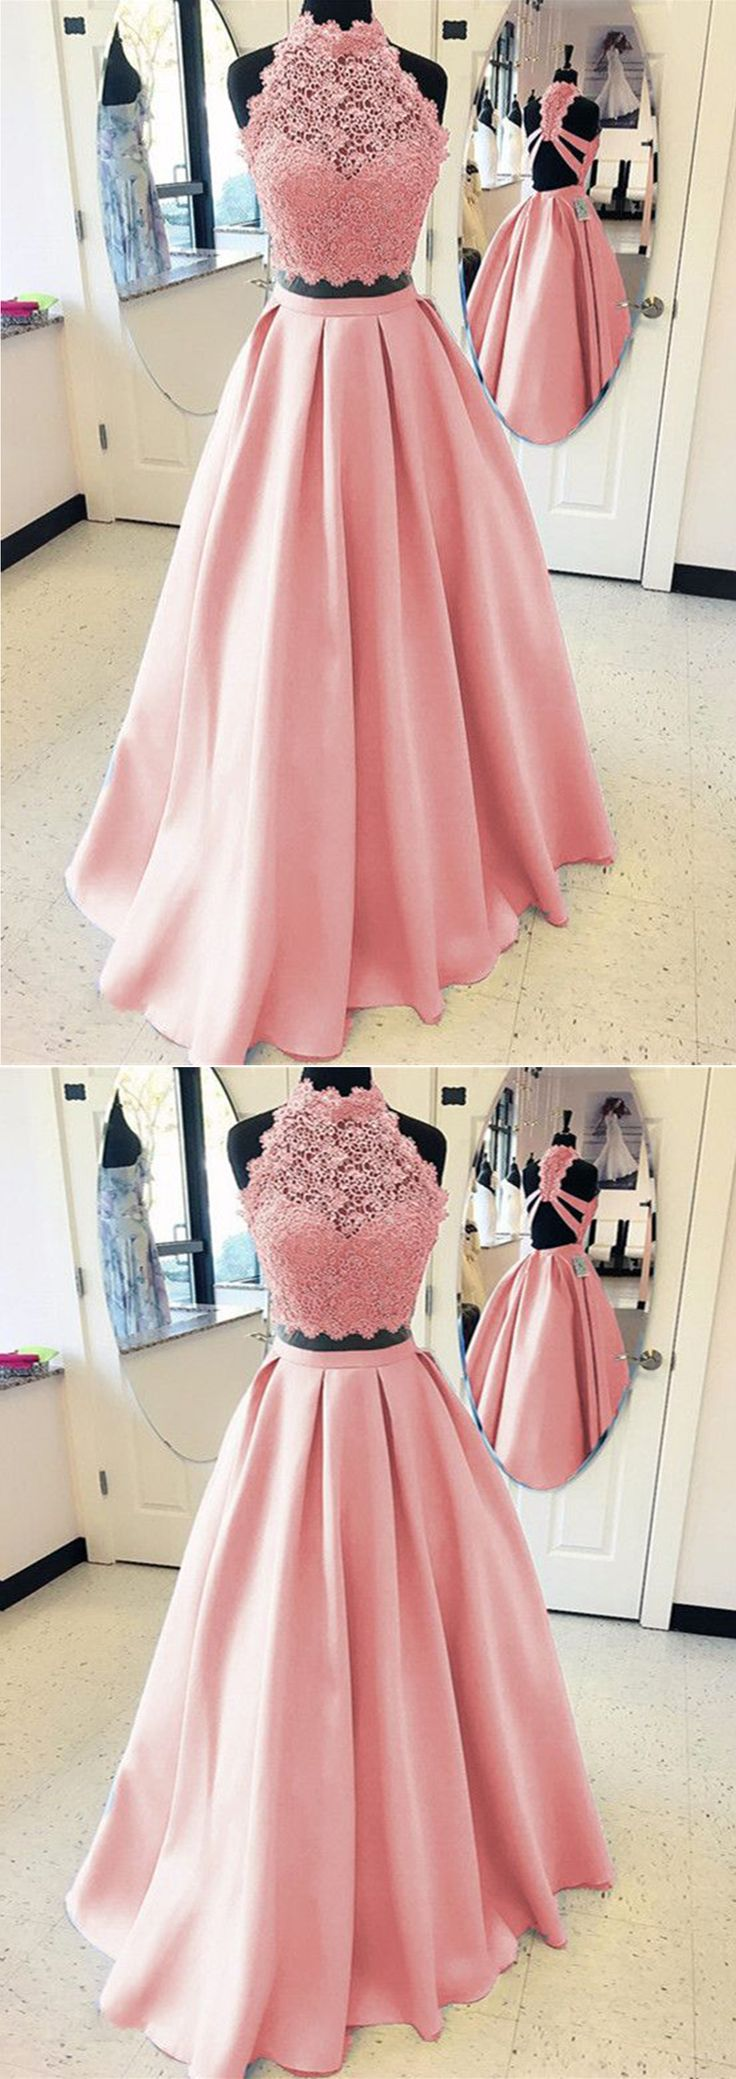 Cute high neck pink lace satin two piece long formal dress for teens #promdress #prom #dress